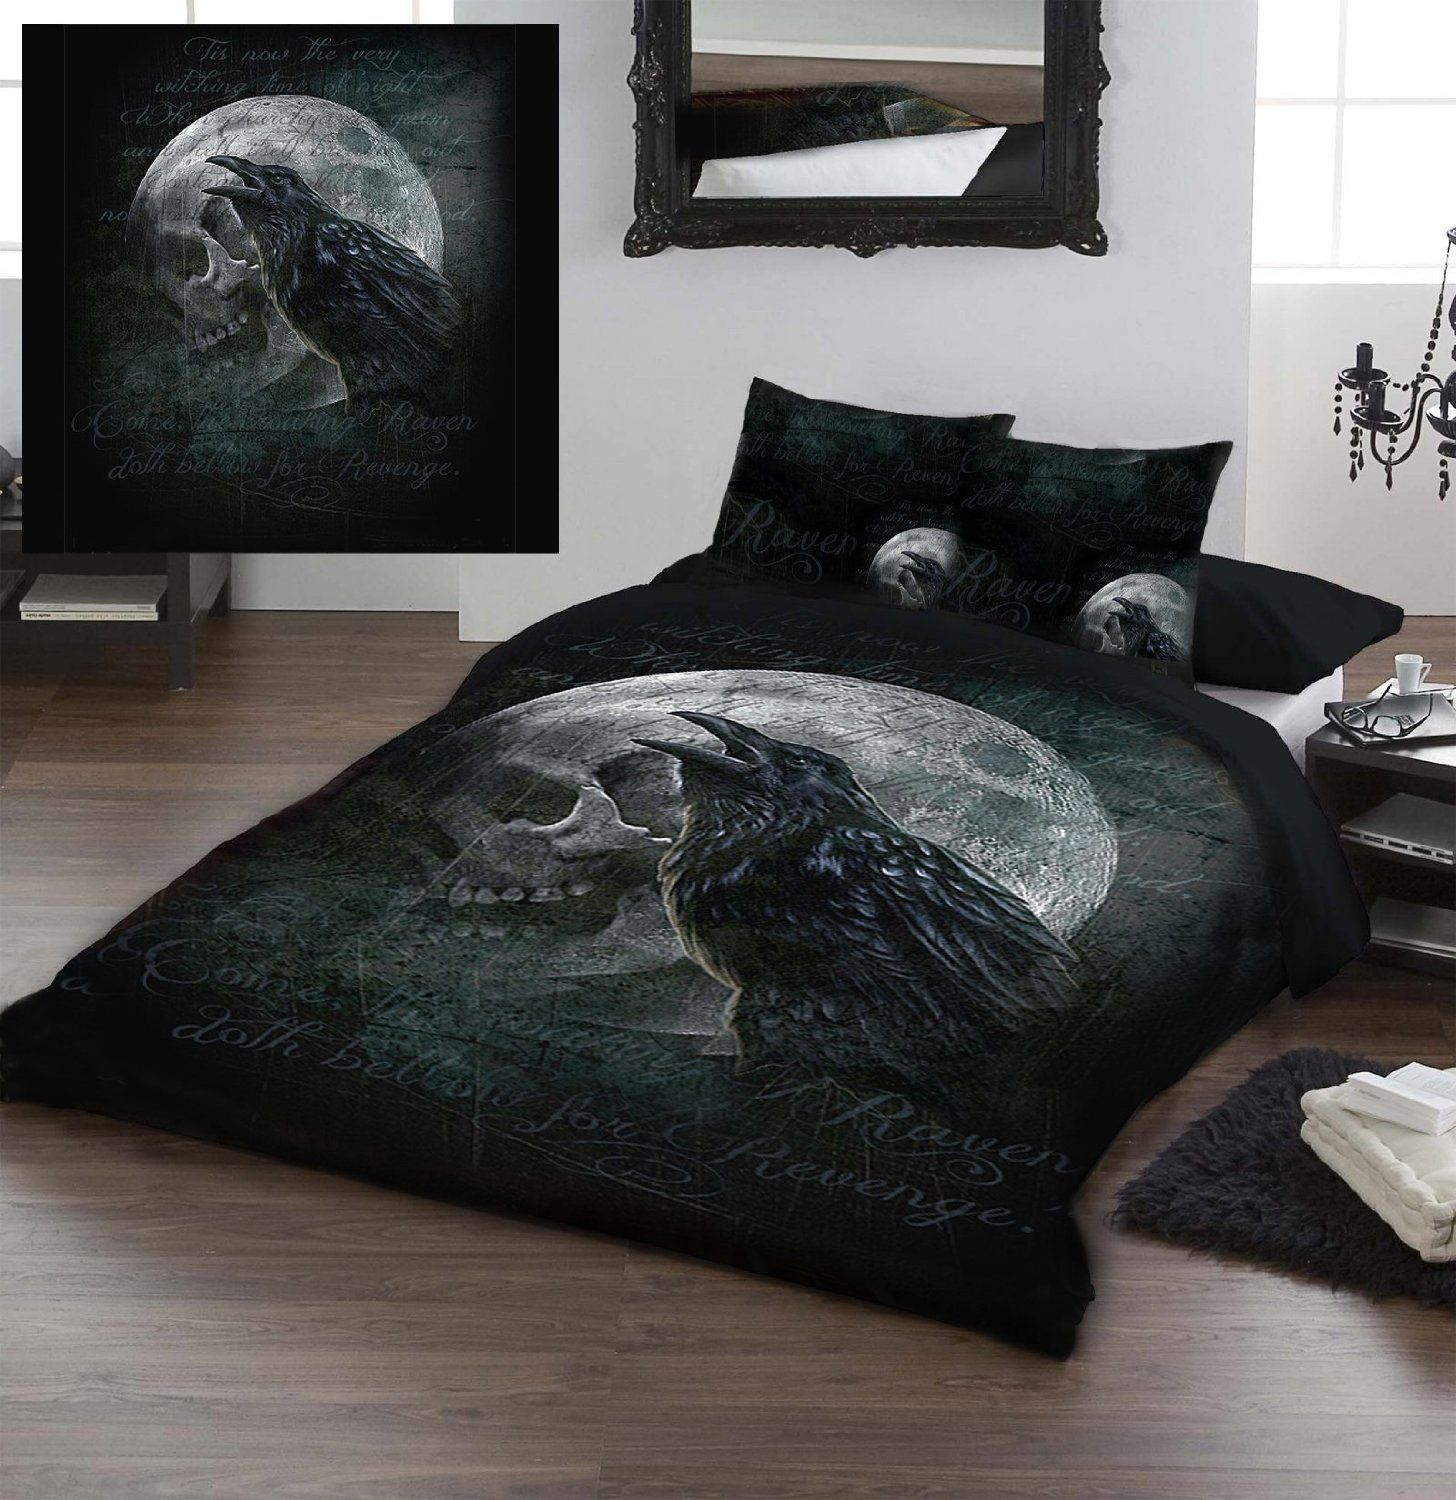 raven bedroom set. Double Bed Duvet  Pillowcase Set Ravens Curse Officially Licenced Gothic Alchemy Artwork